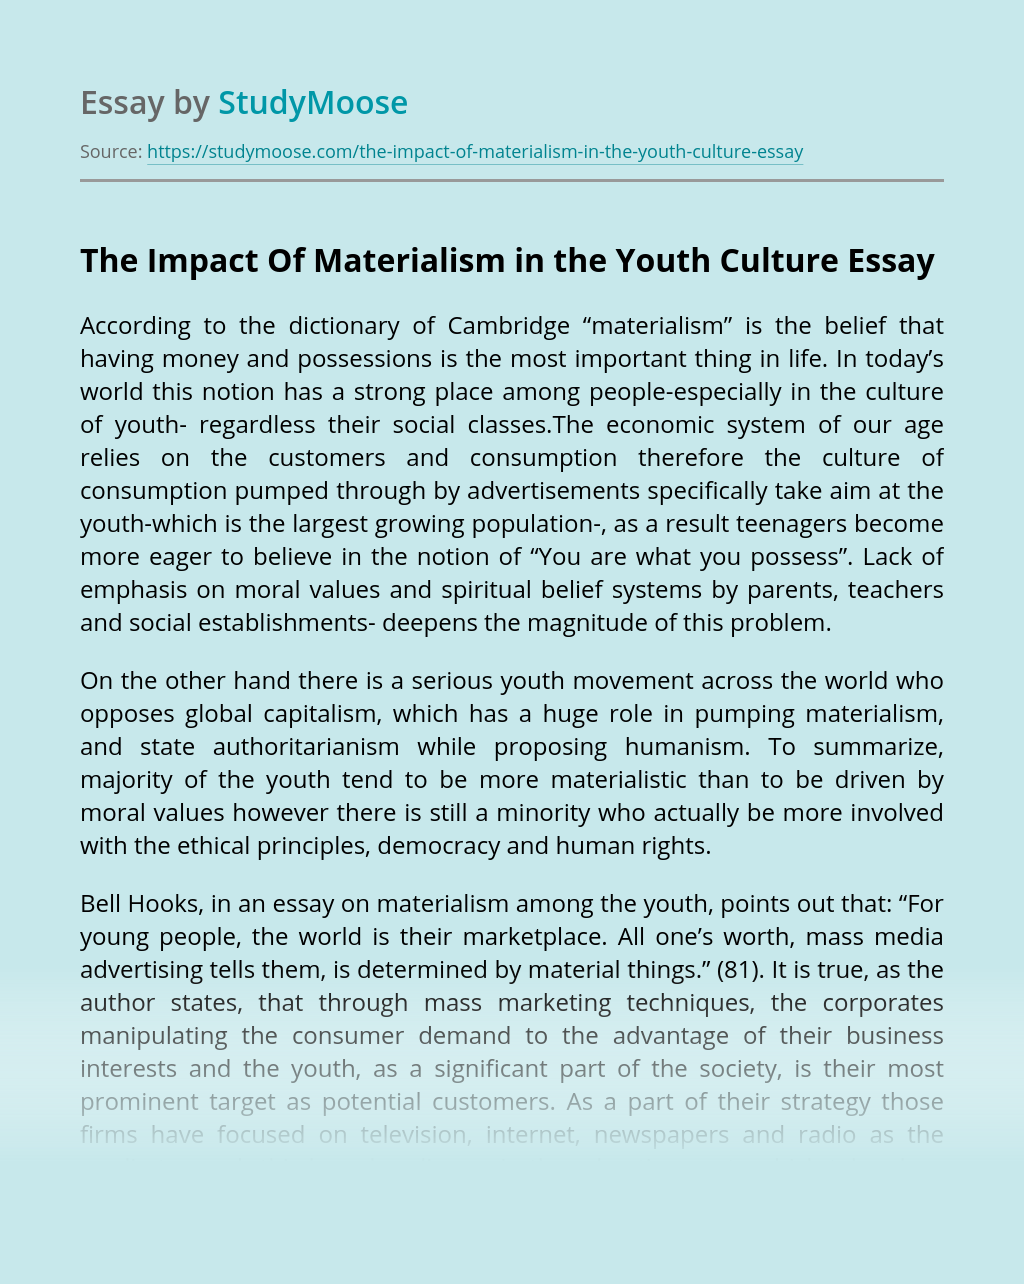 The Impact Of Materialism in the Youth Culture